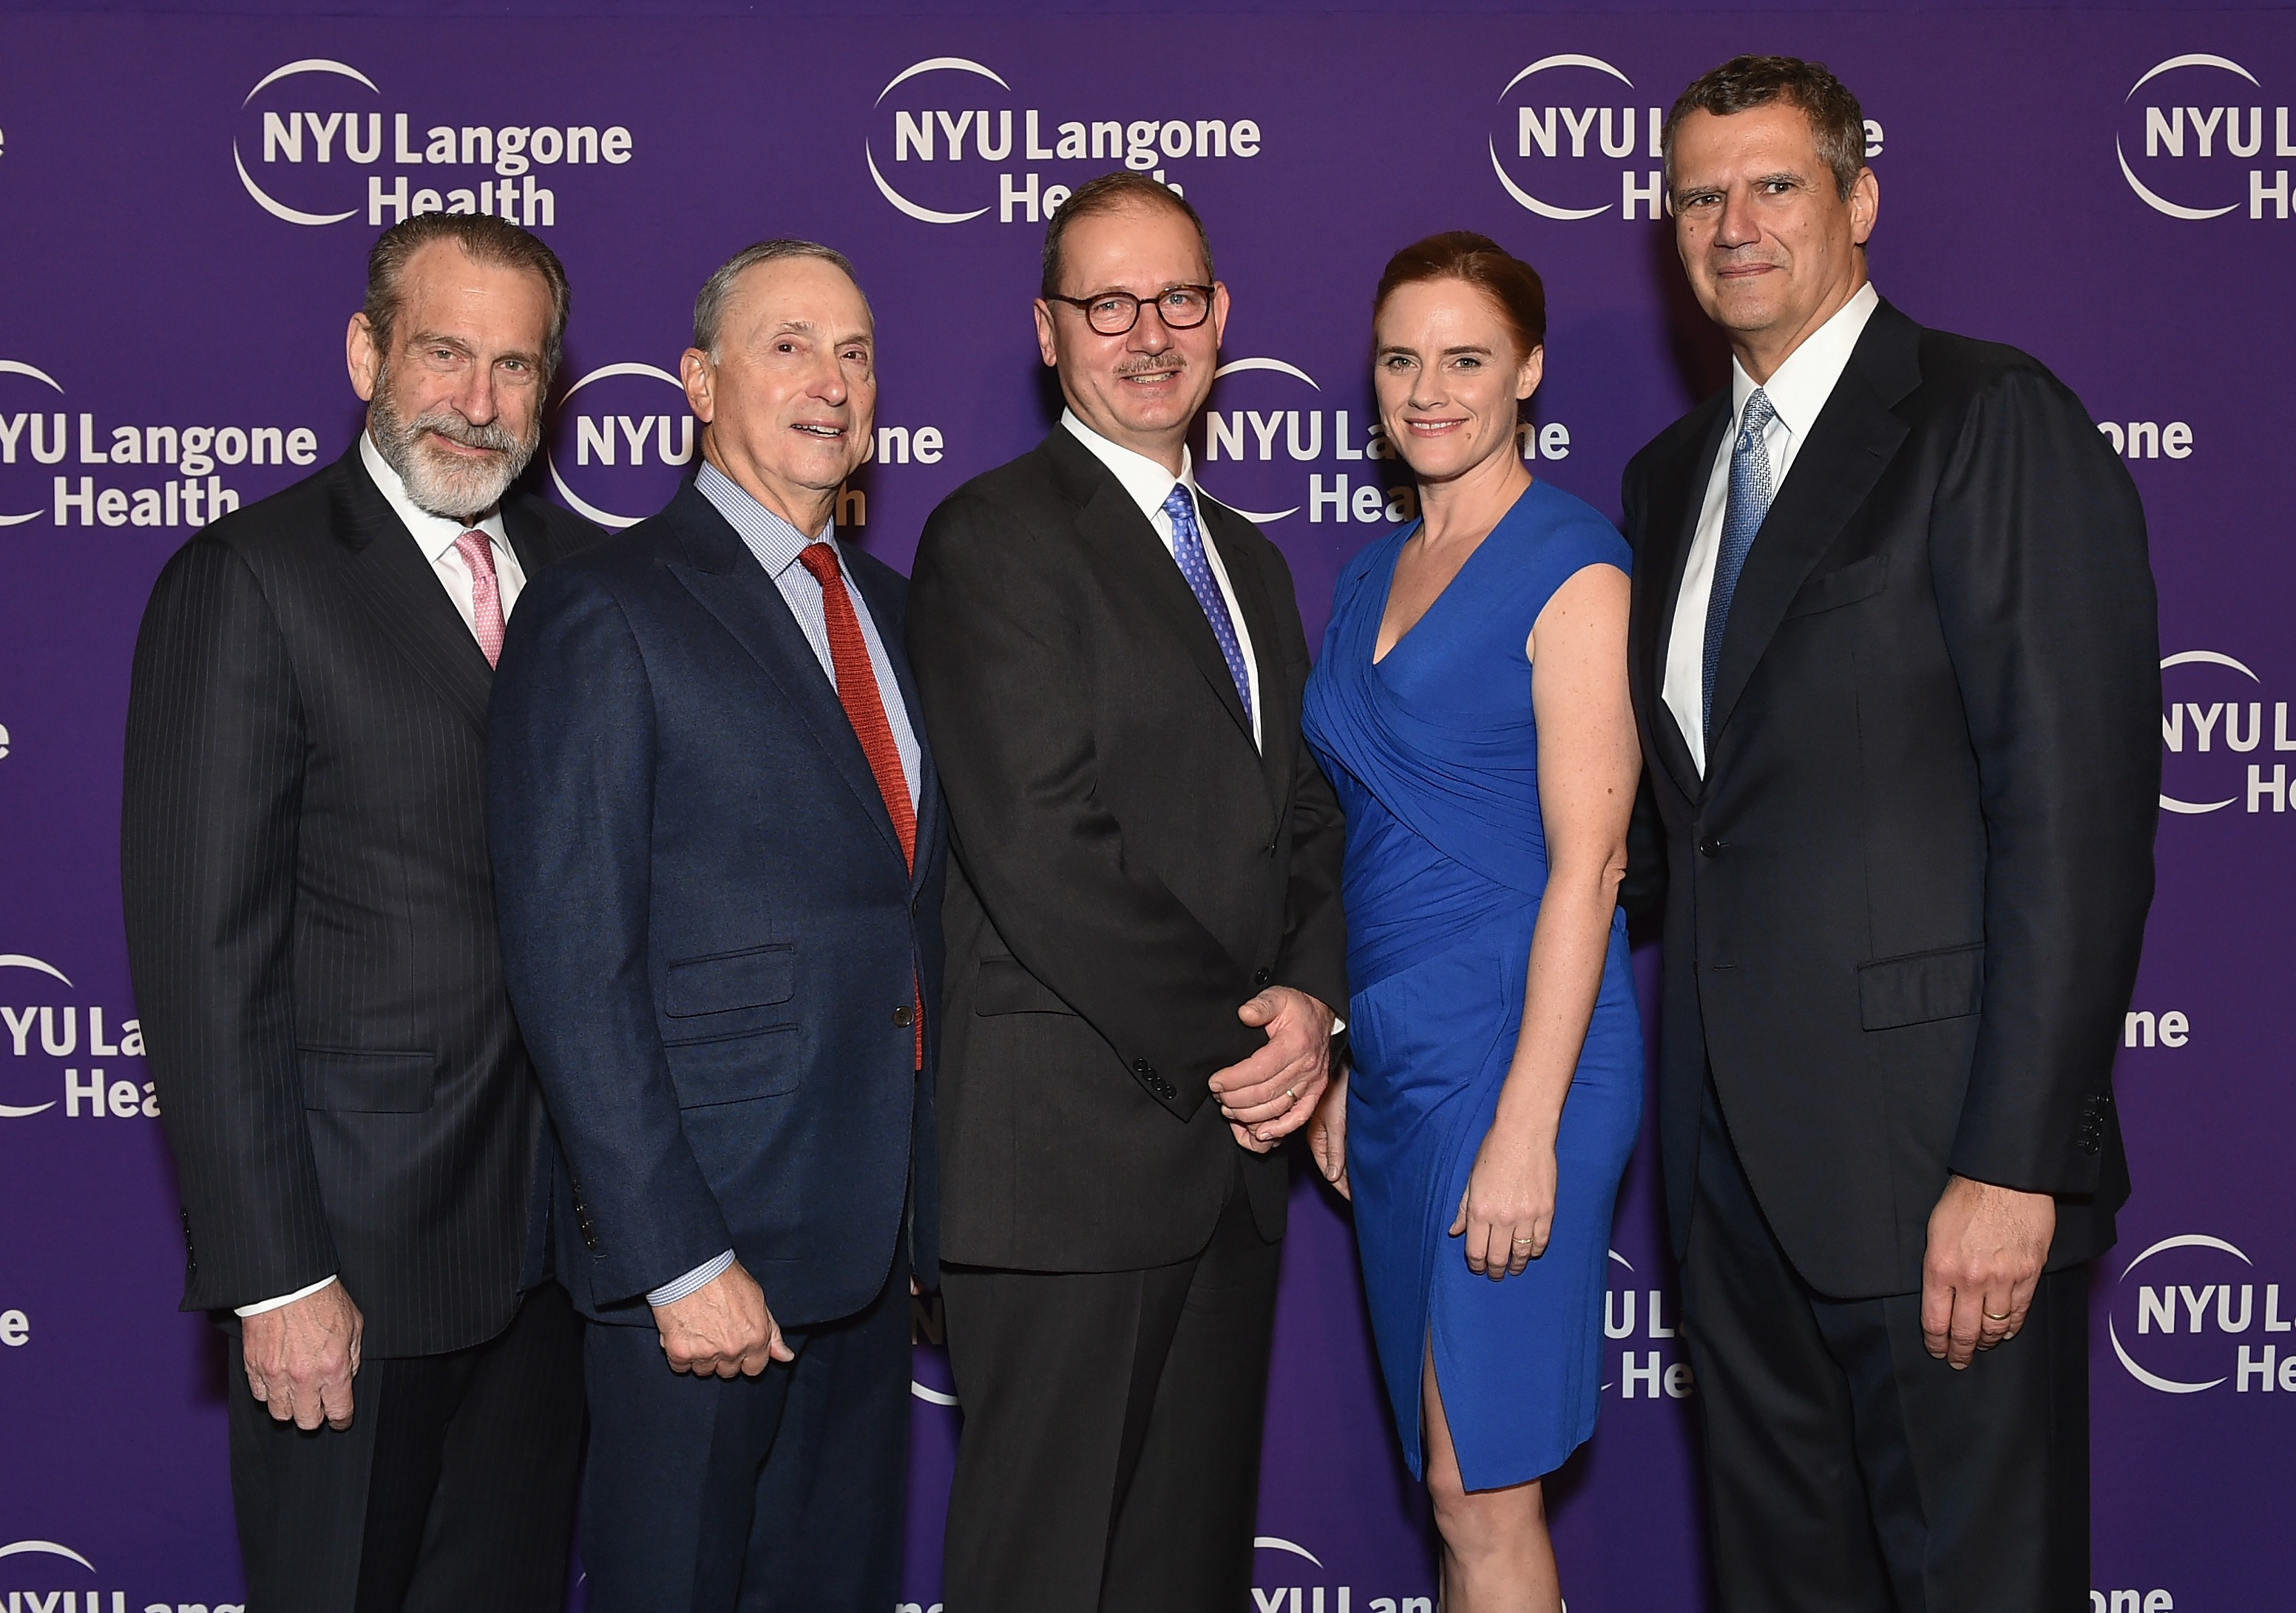 NYU LANGONE'S 2017 MUSCULOSKELETAL BALL RAISES MORE THAN